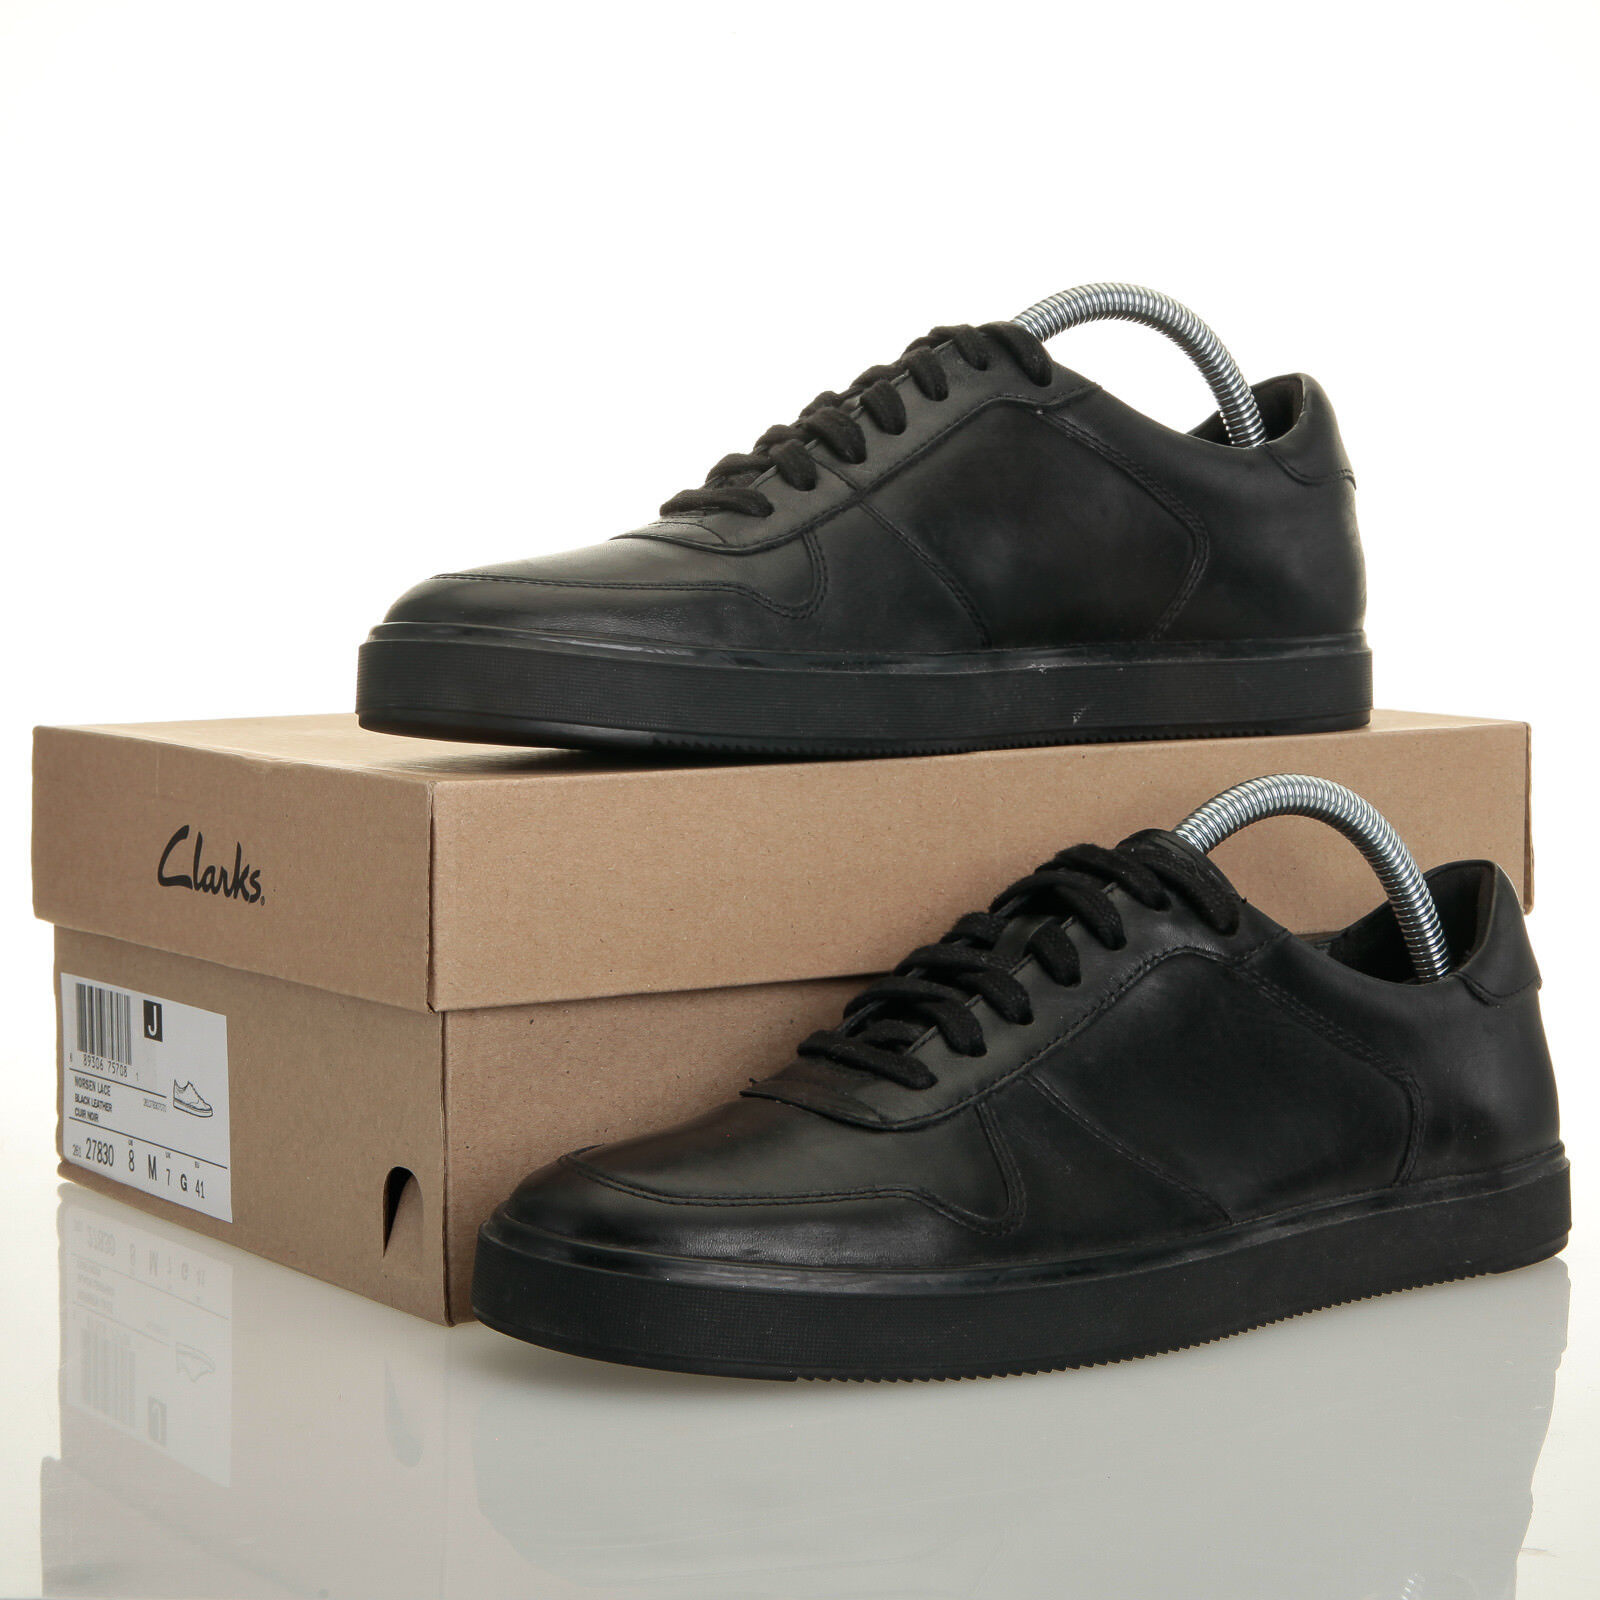 Clarks Norsen Black Leather Lace Up